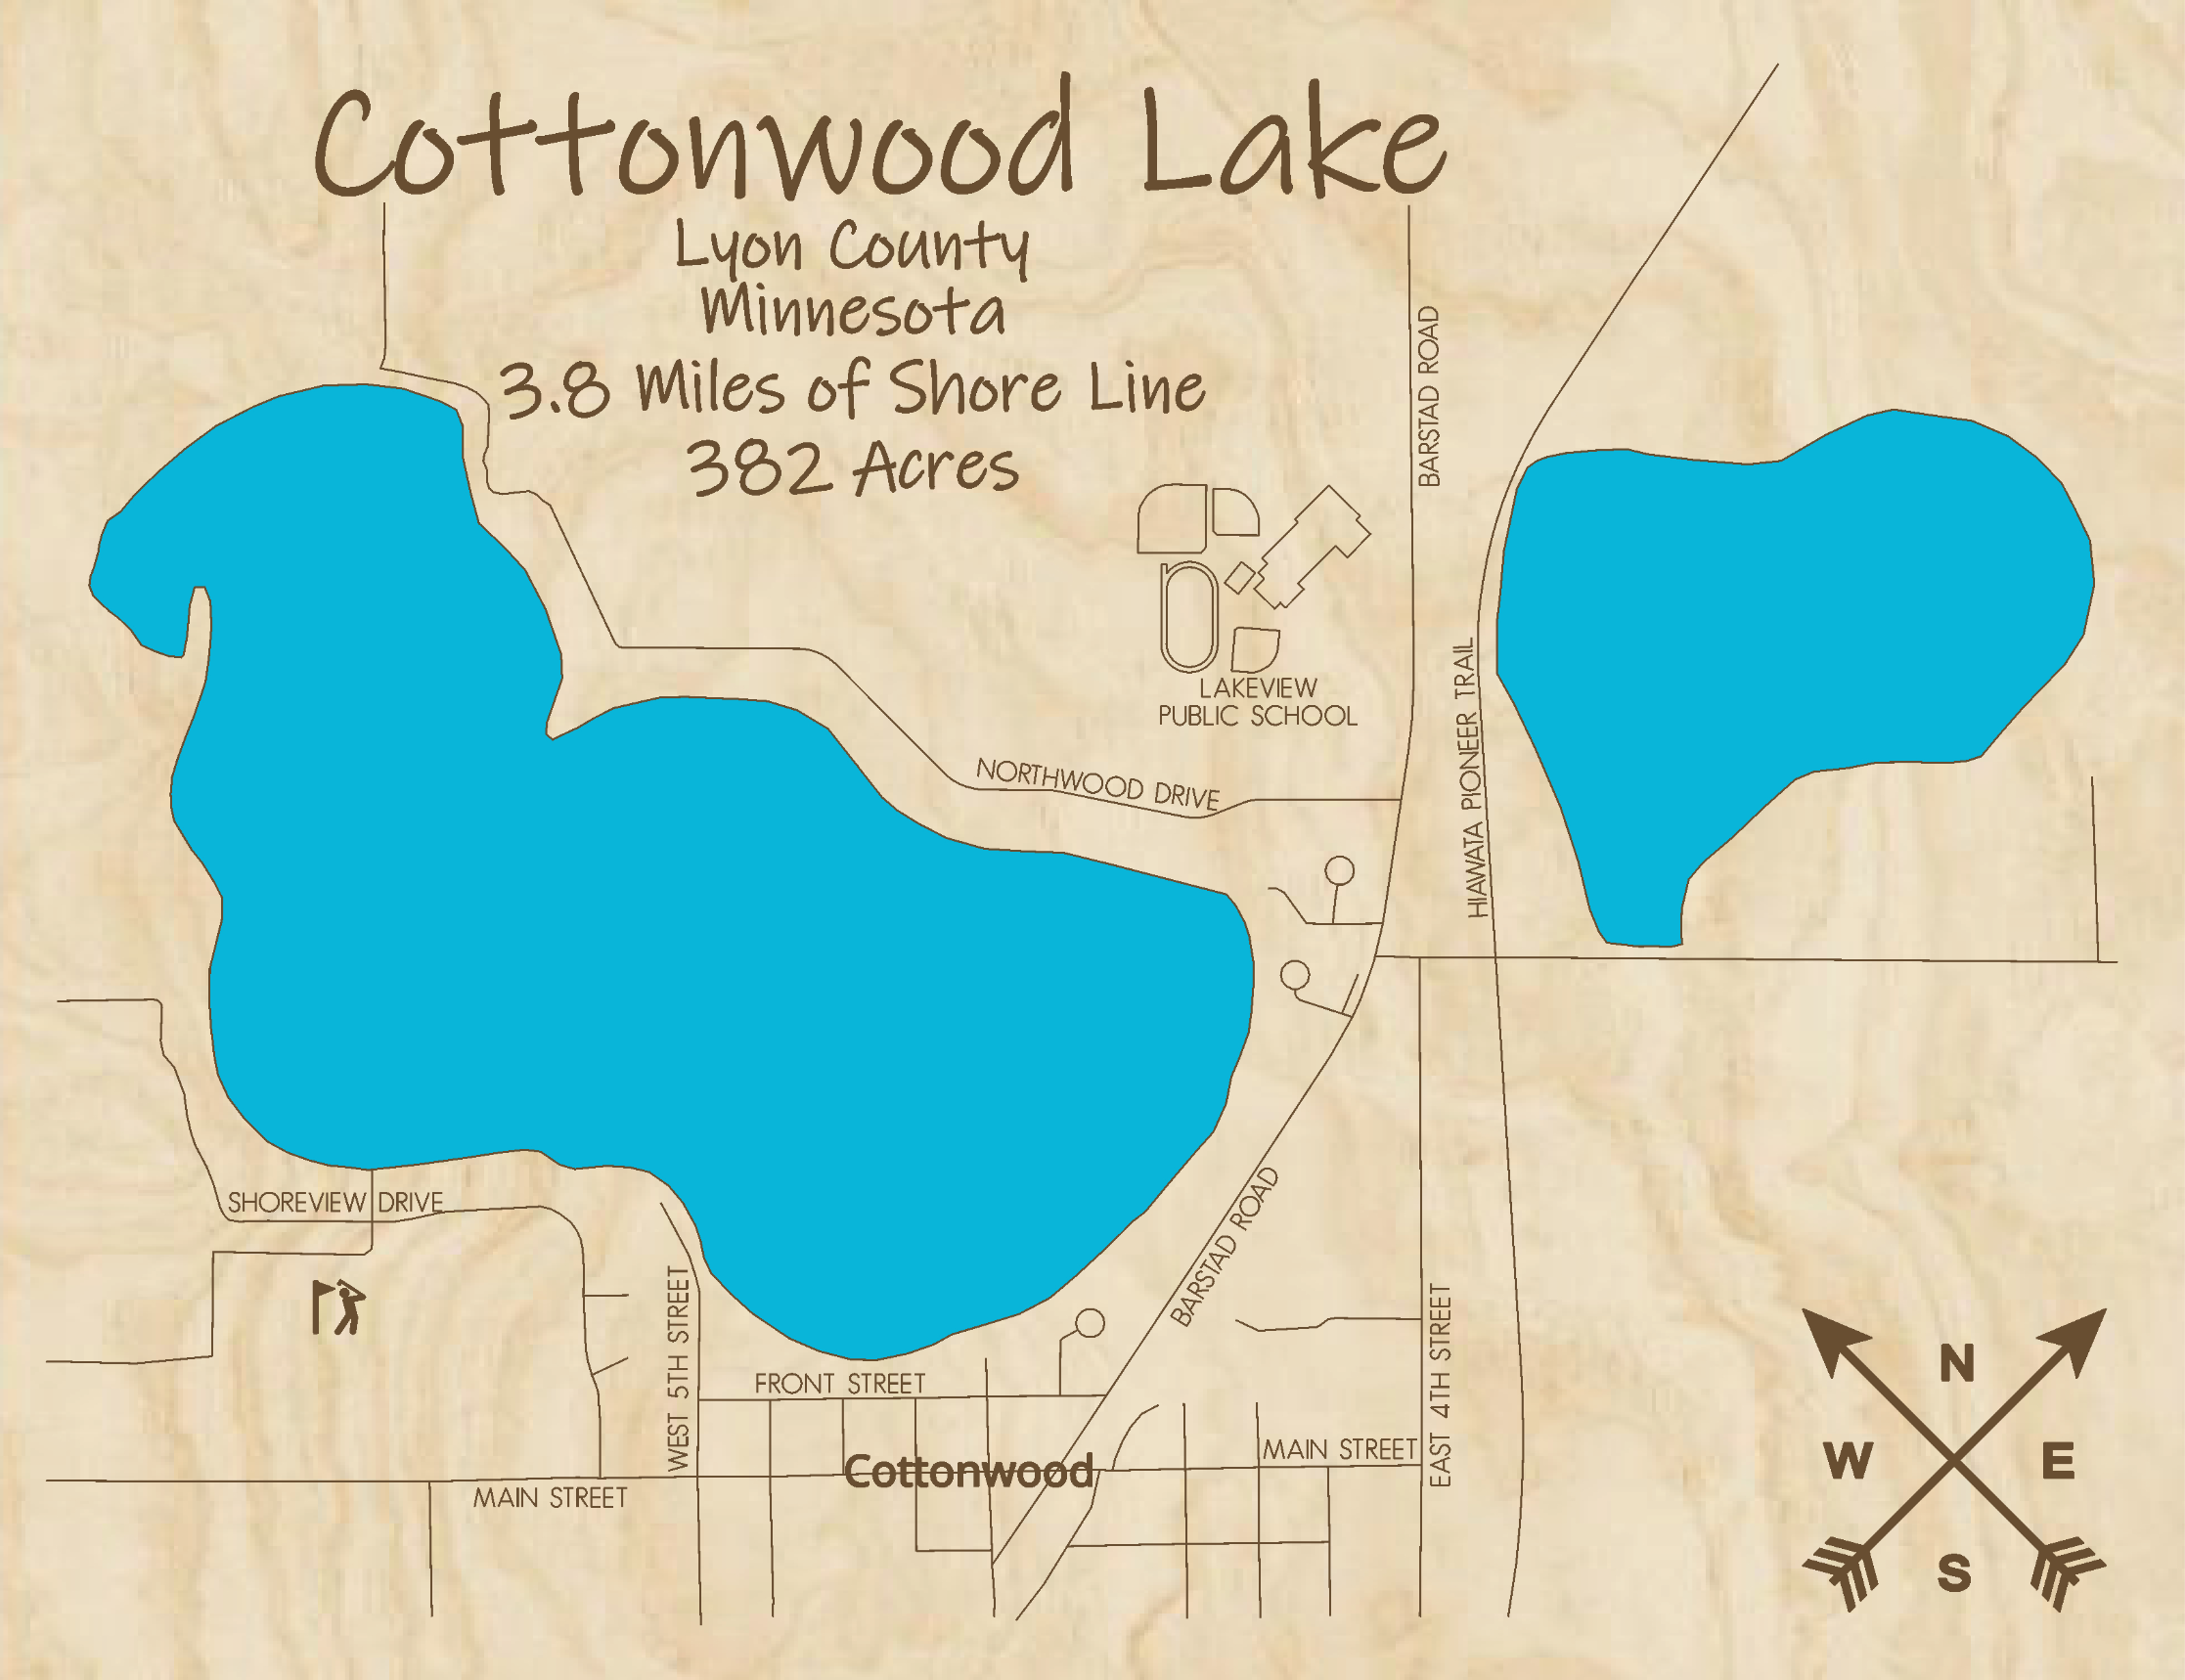 Cottonwood Lake Multi-layered Wood Lake Map